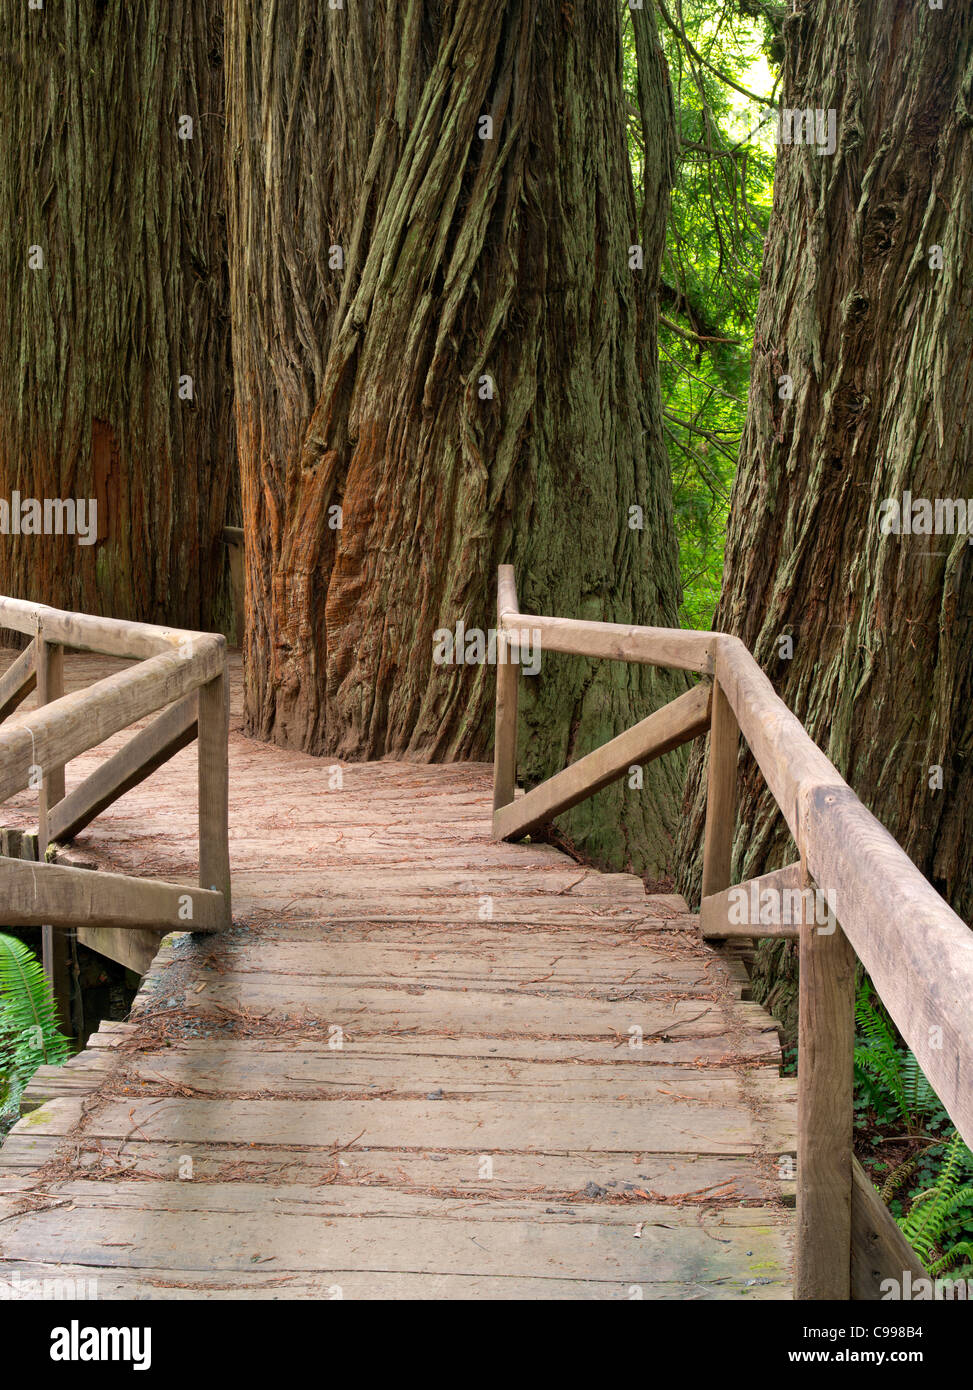 Bridge over creek in Redwood National and State Parks, California - Stock Image